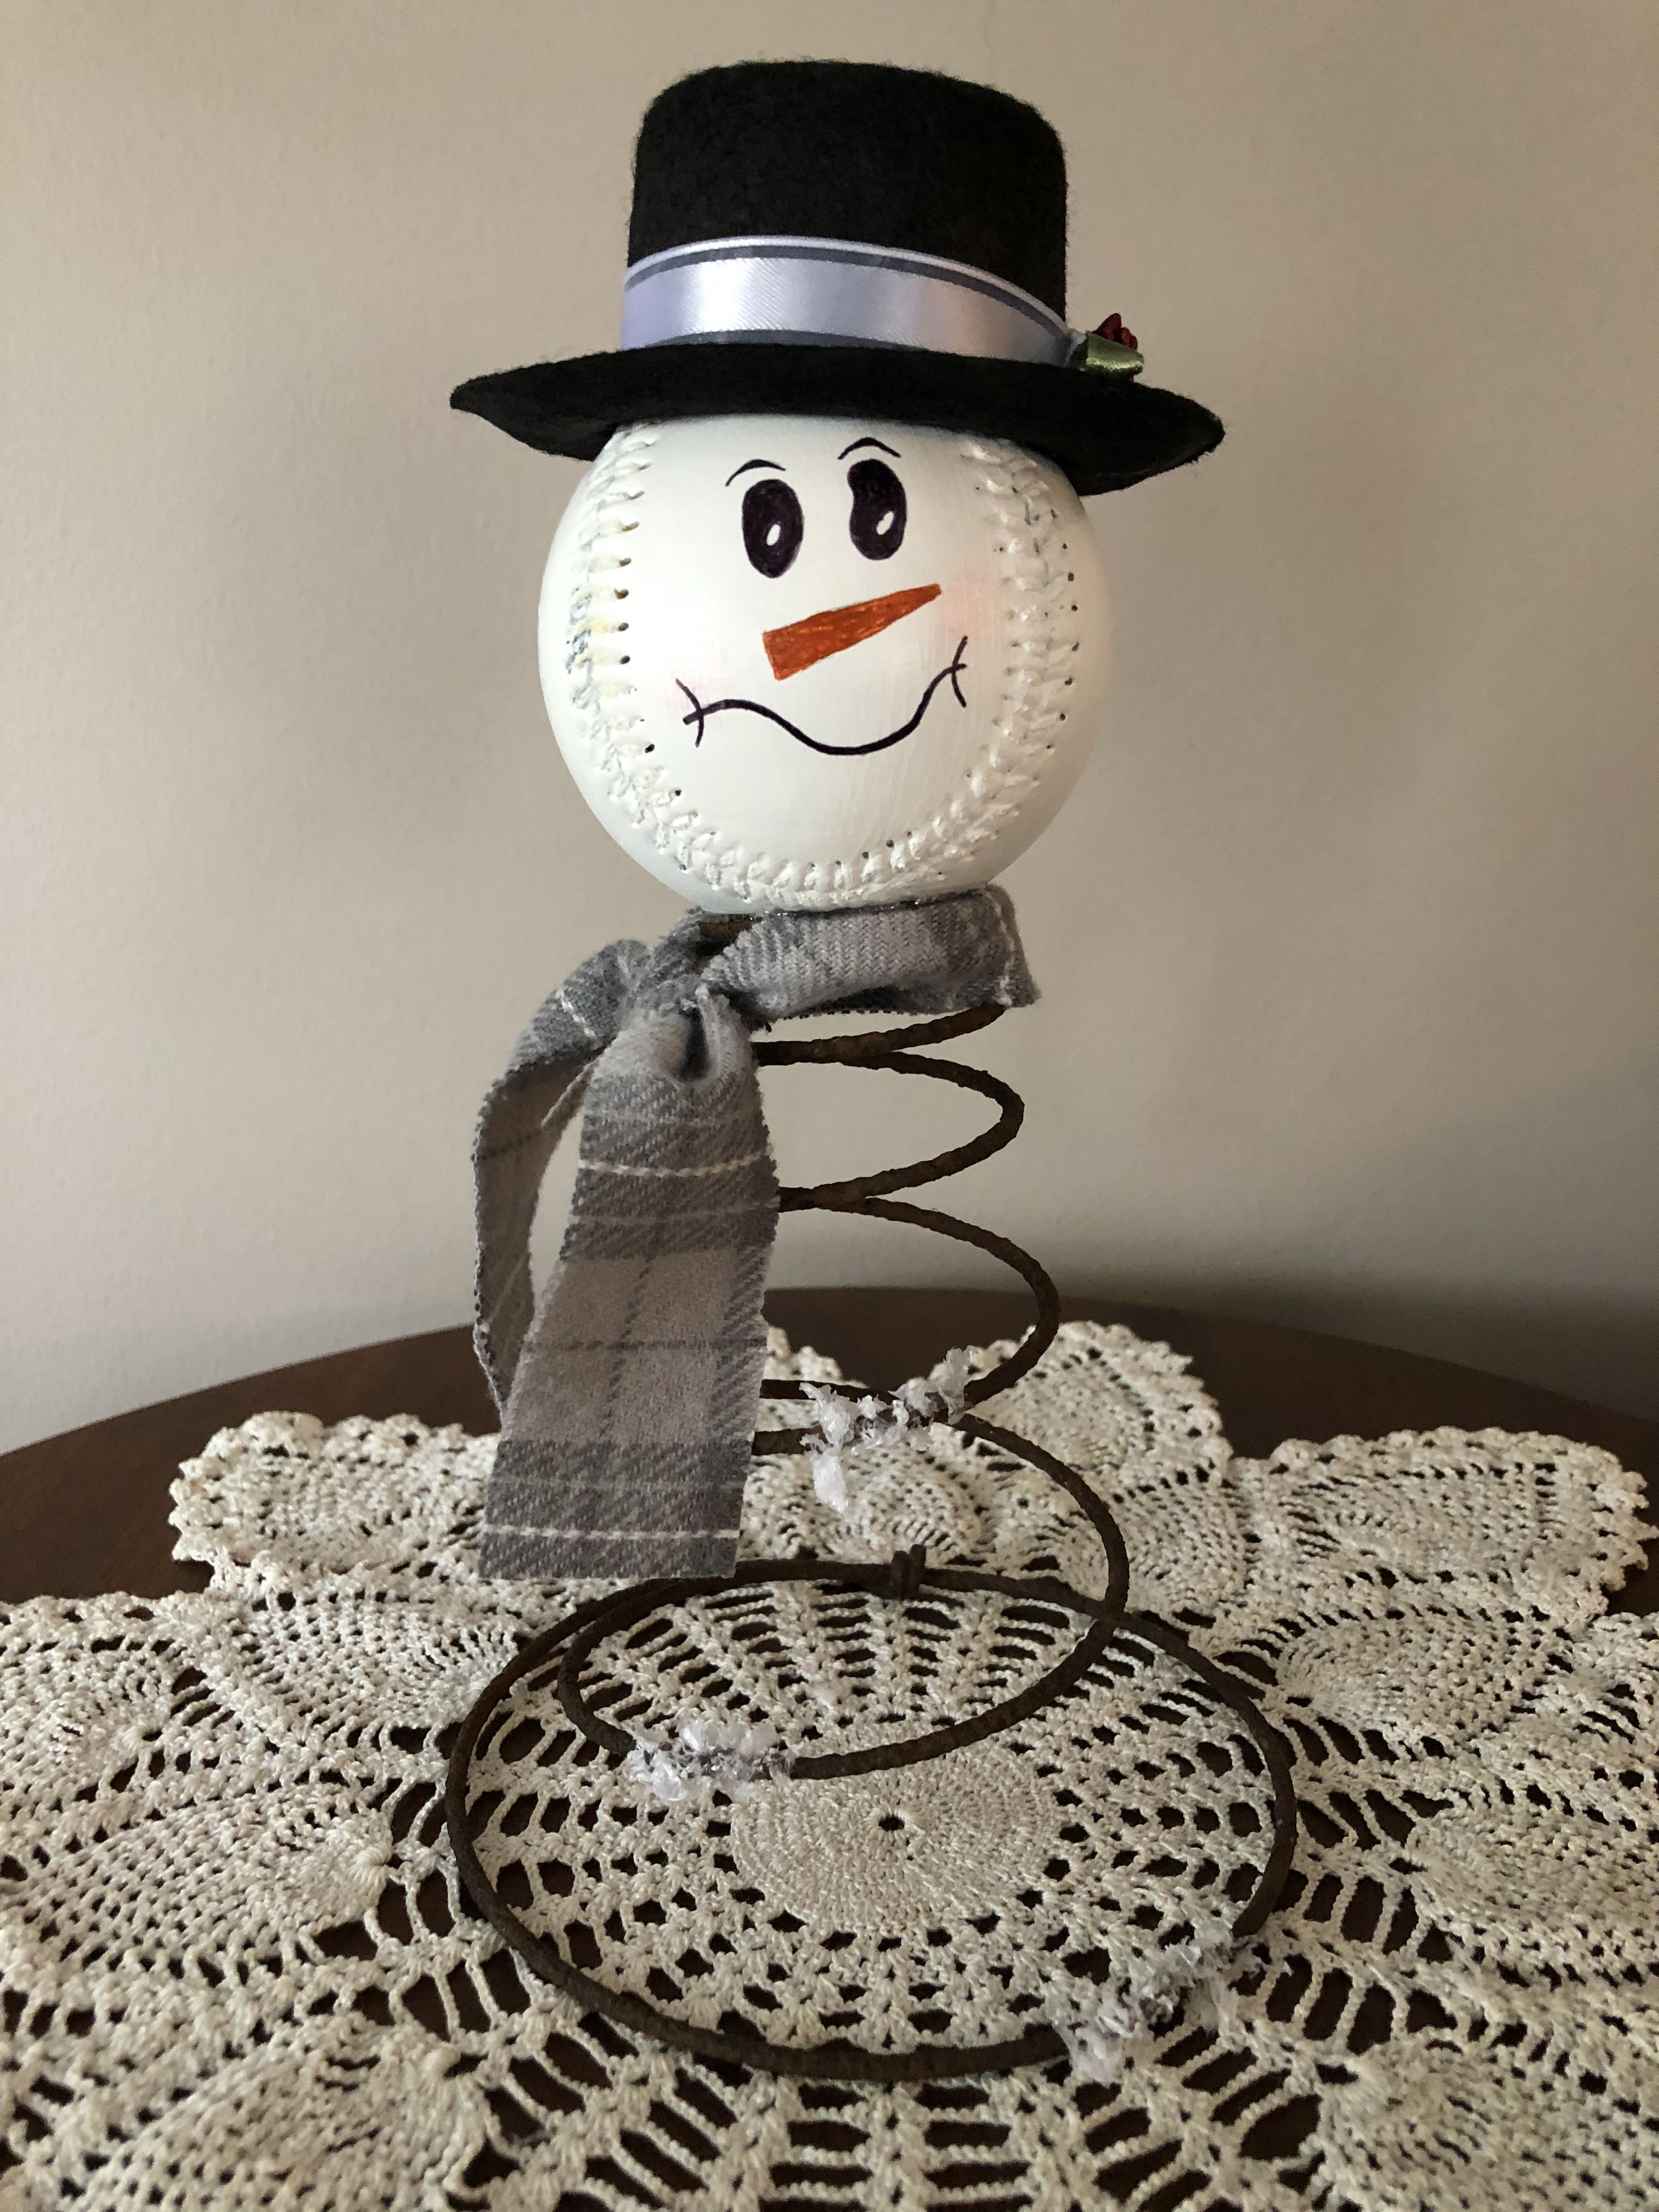 Bed spring snowman Holiday crafts snowman, Bed spring